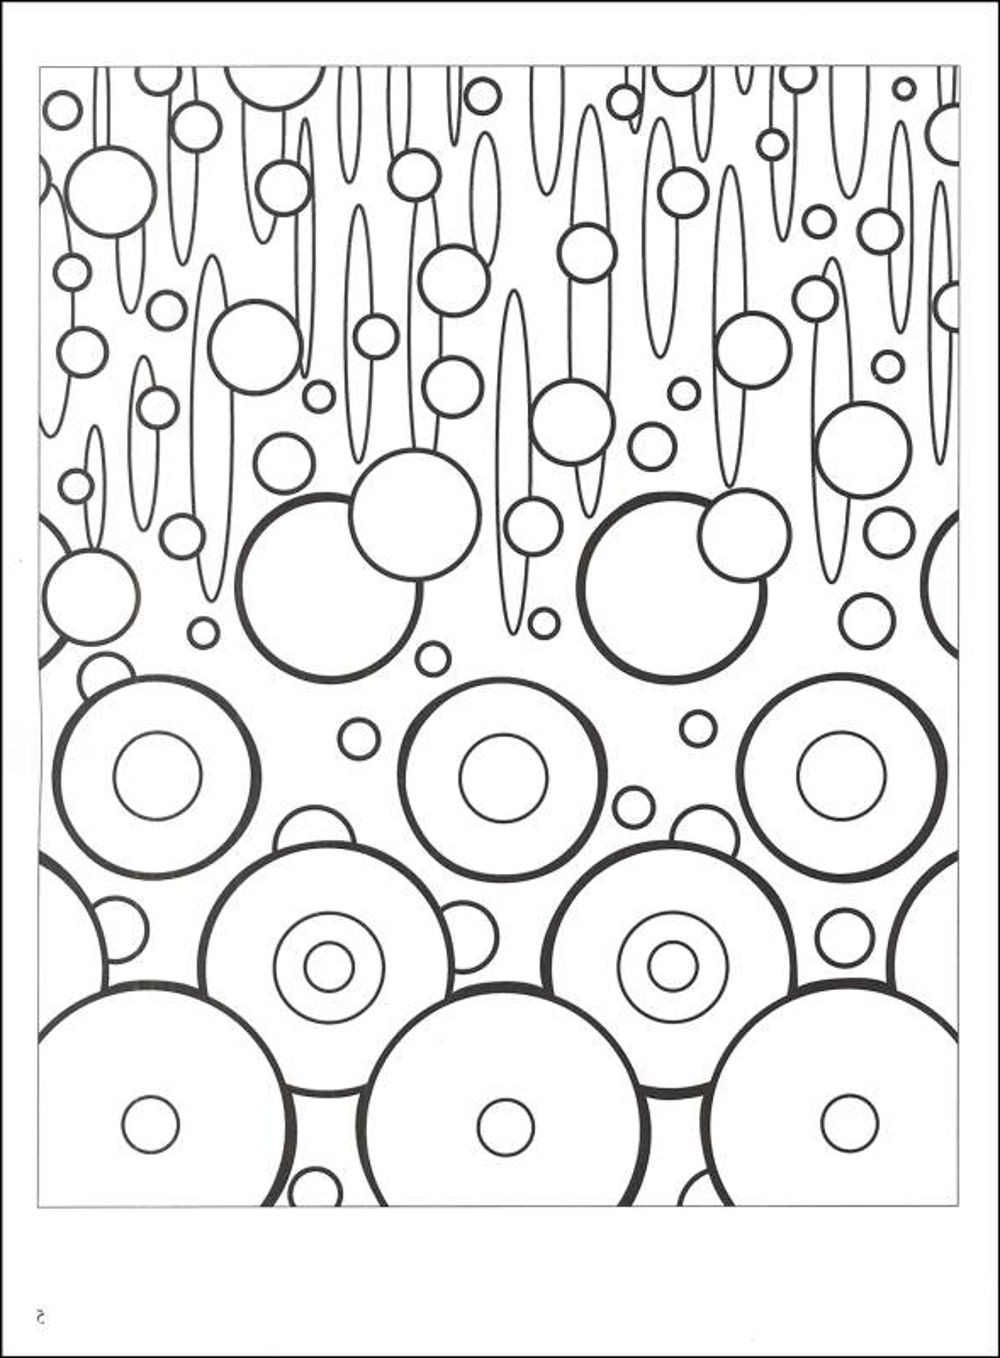 Free Online Coloring Pages For Adults 1000×1358 Coloring